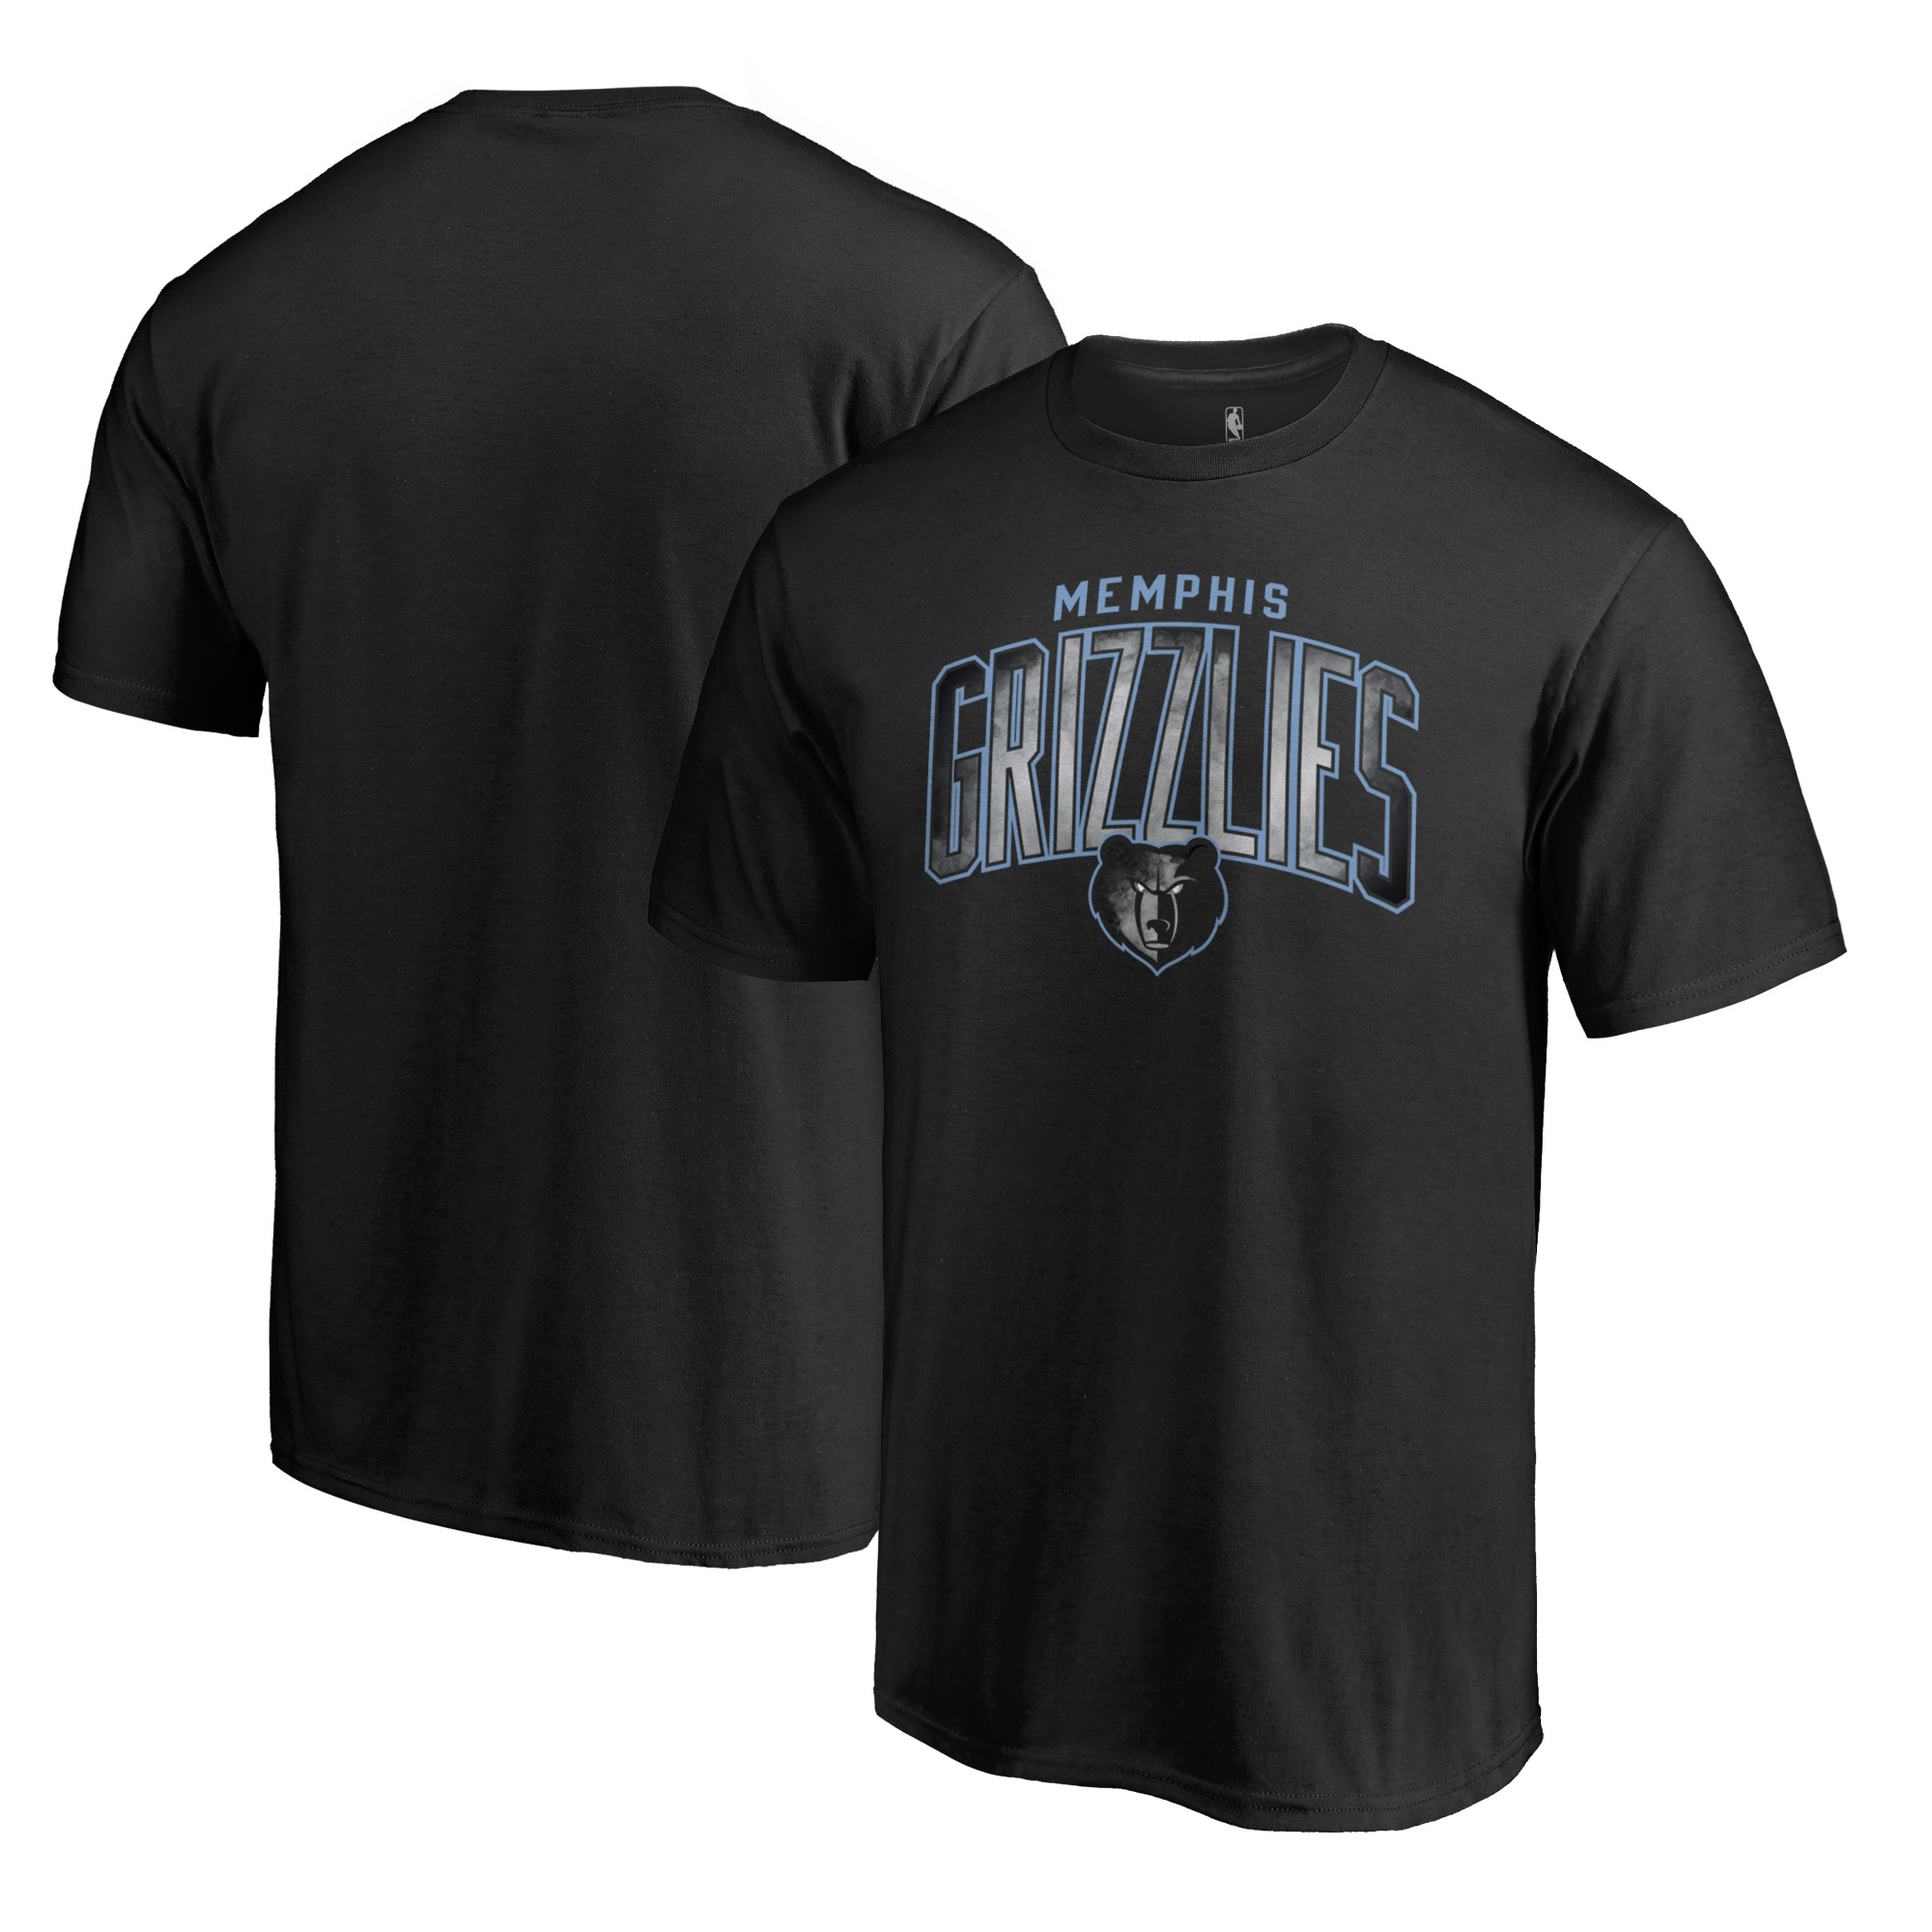 Memphis Grizzlies Fanatics Branded Arch Smoke T-Shirt - Black